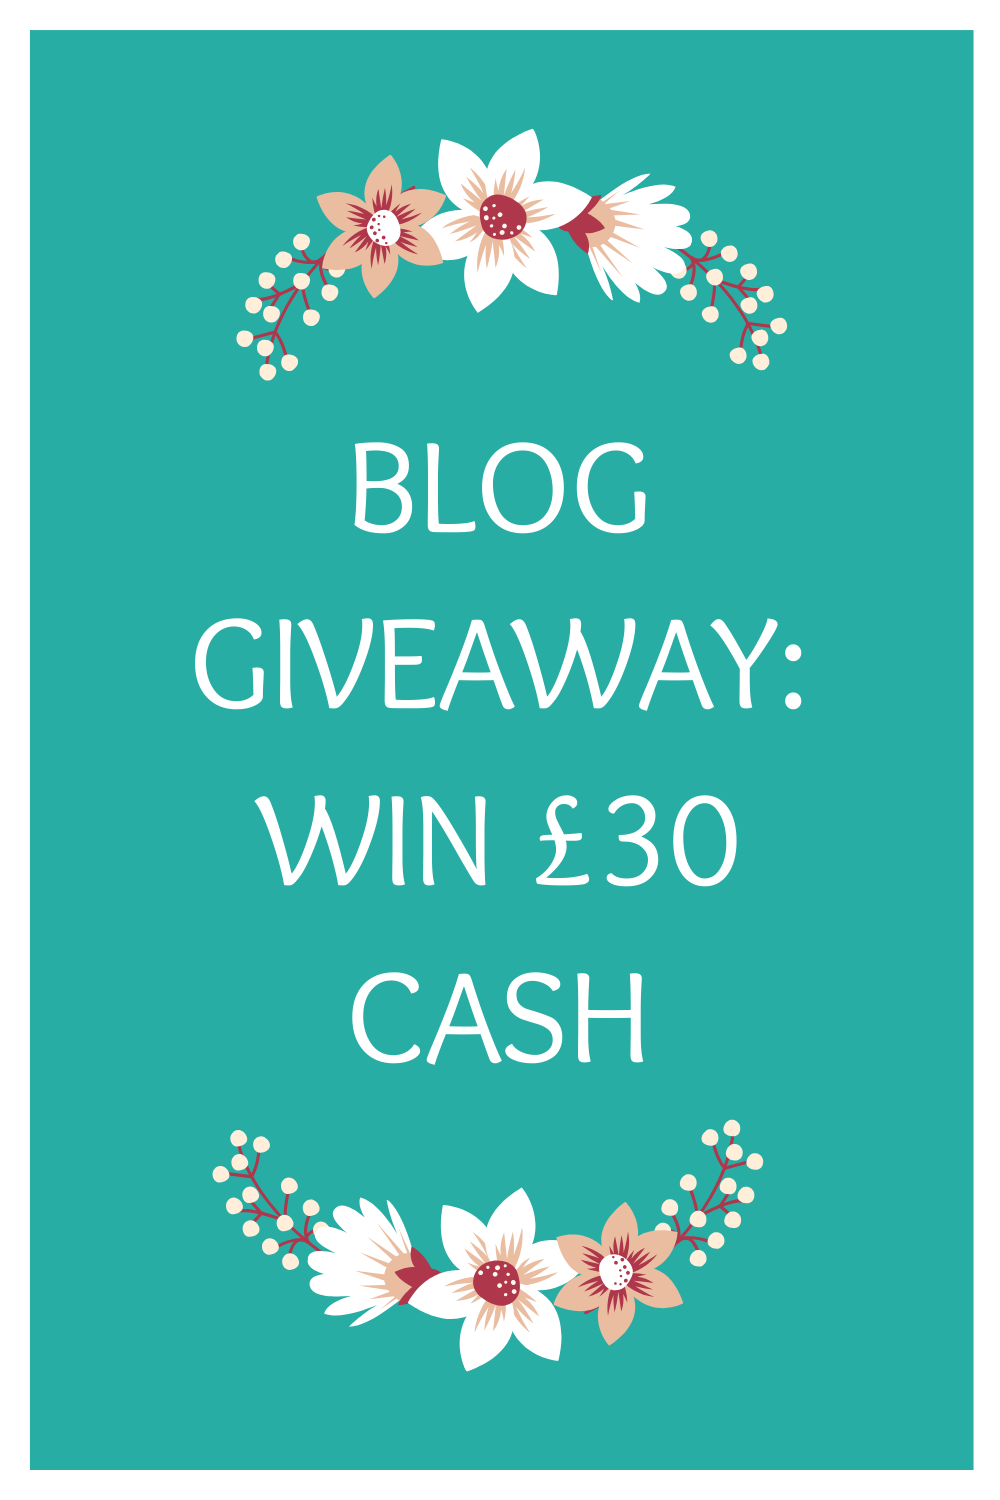 BLOG GIVEAWAY WIN £30 CASH